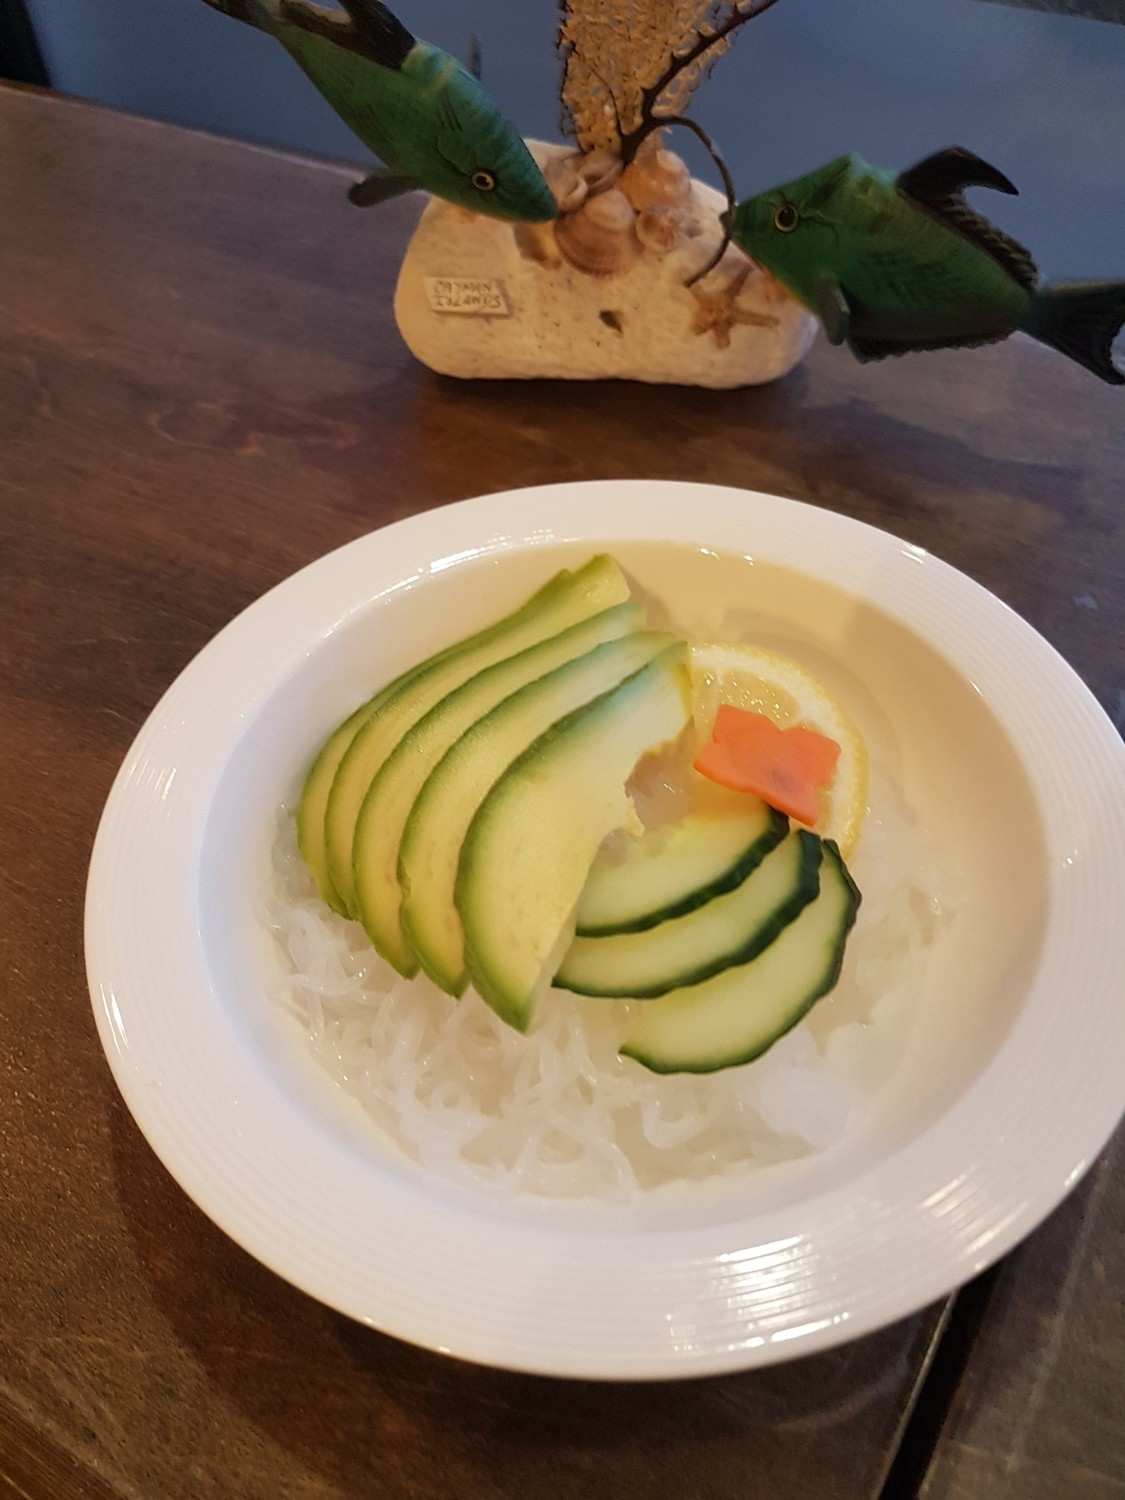 Sunomono (Avocado)